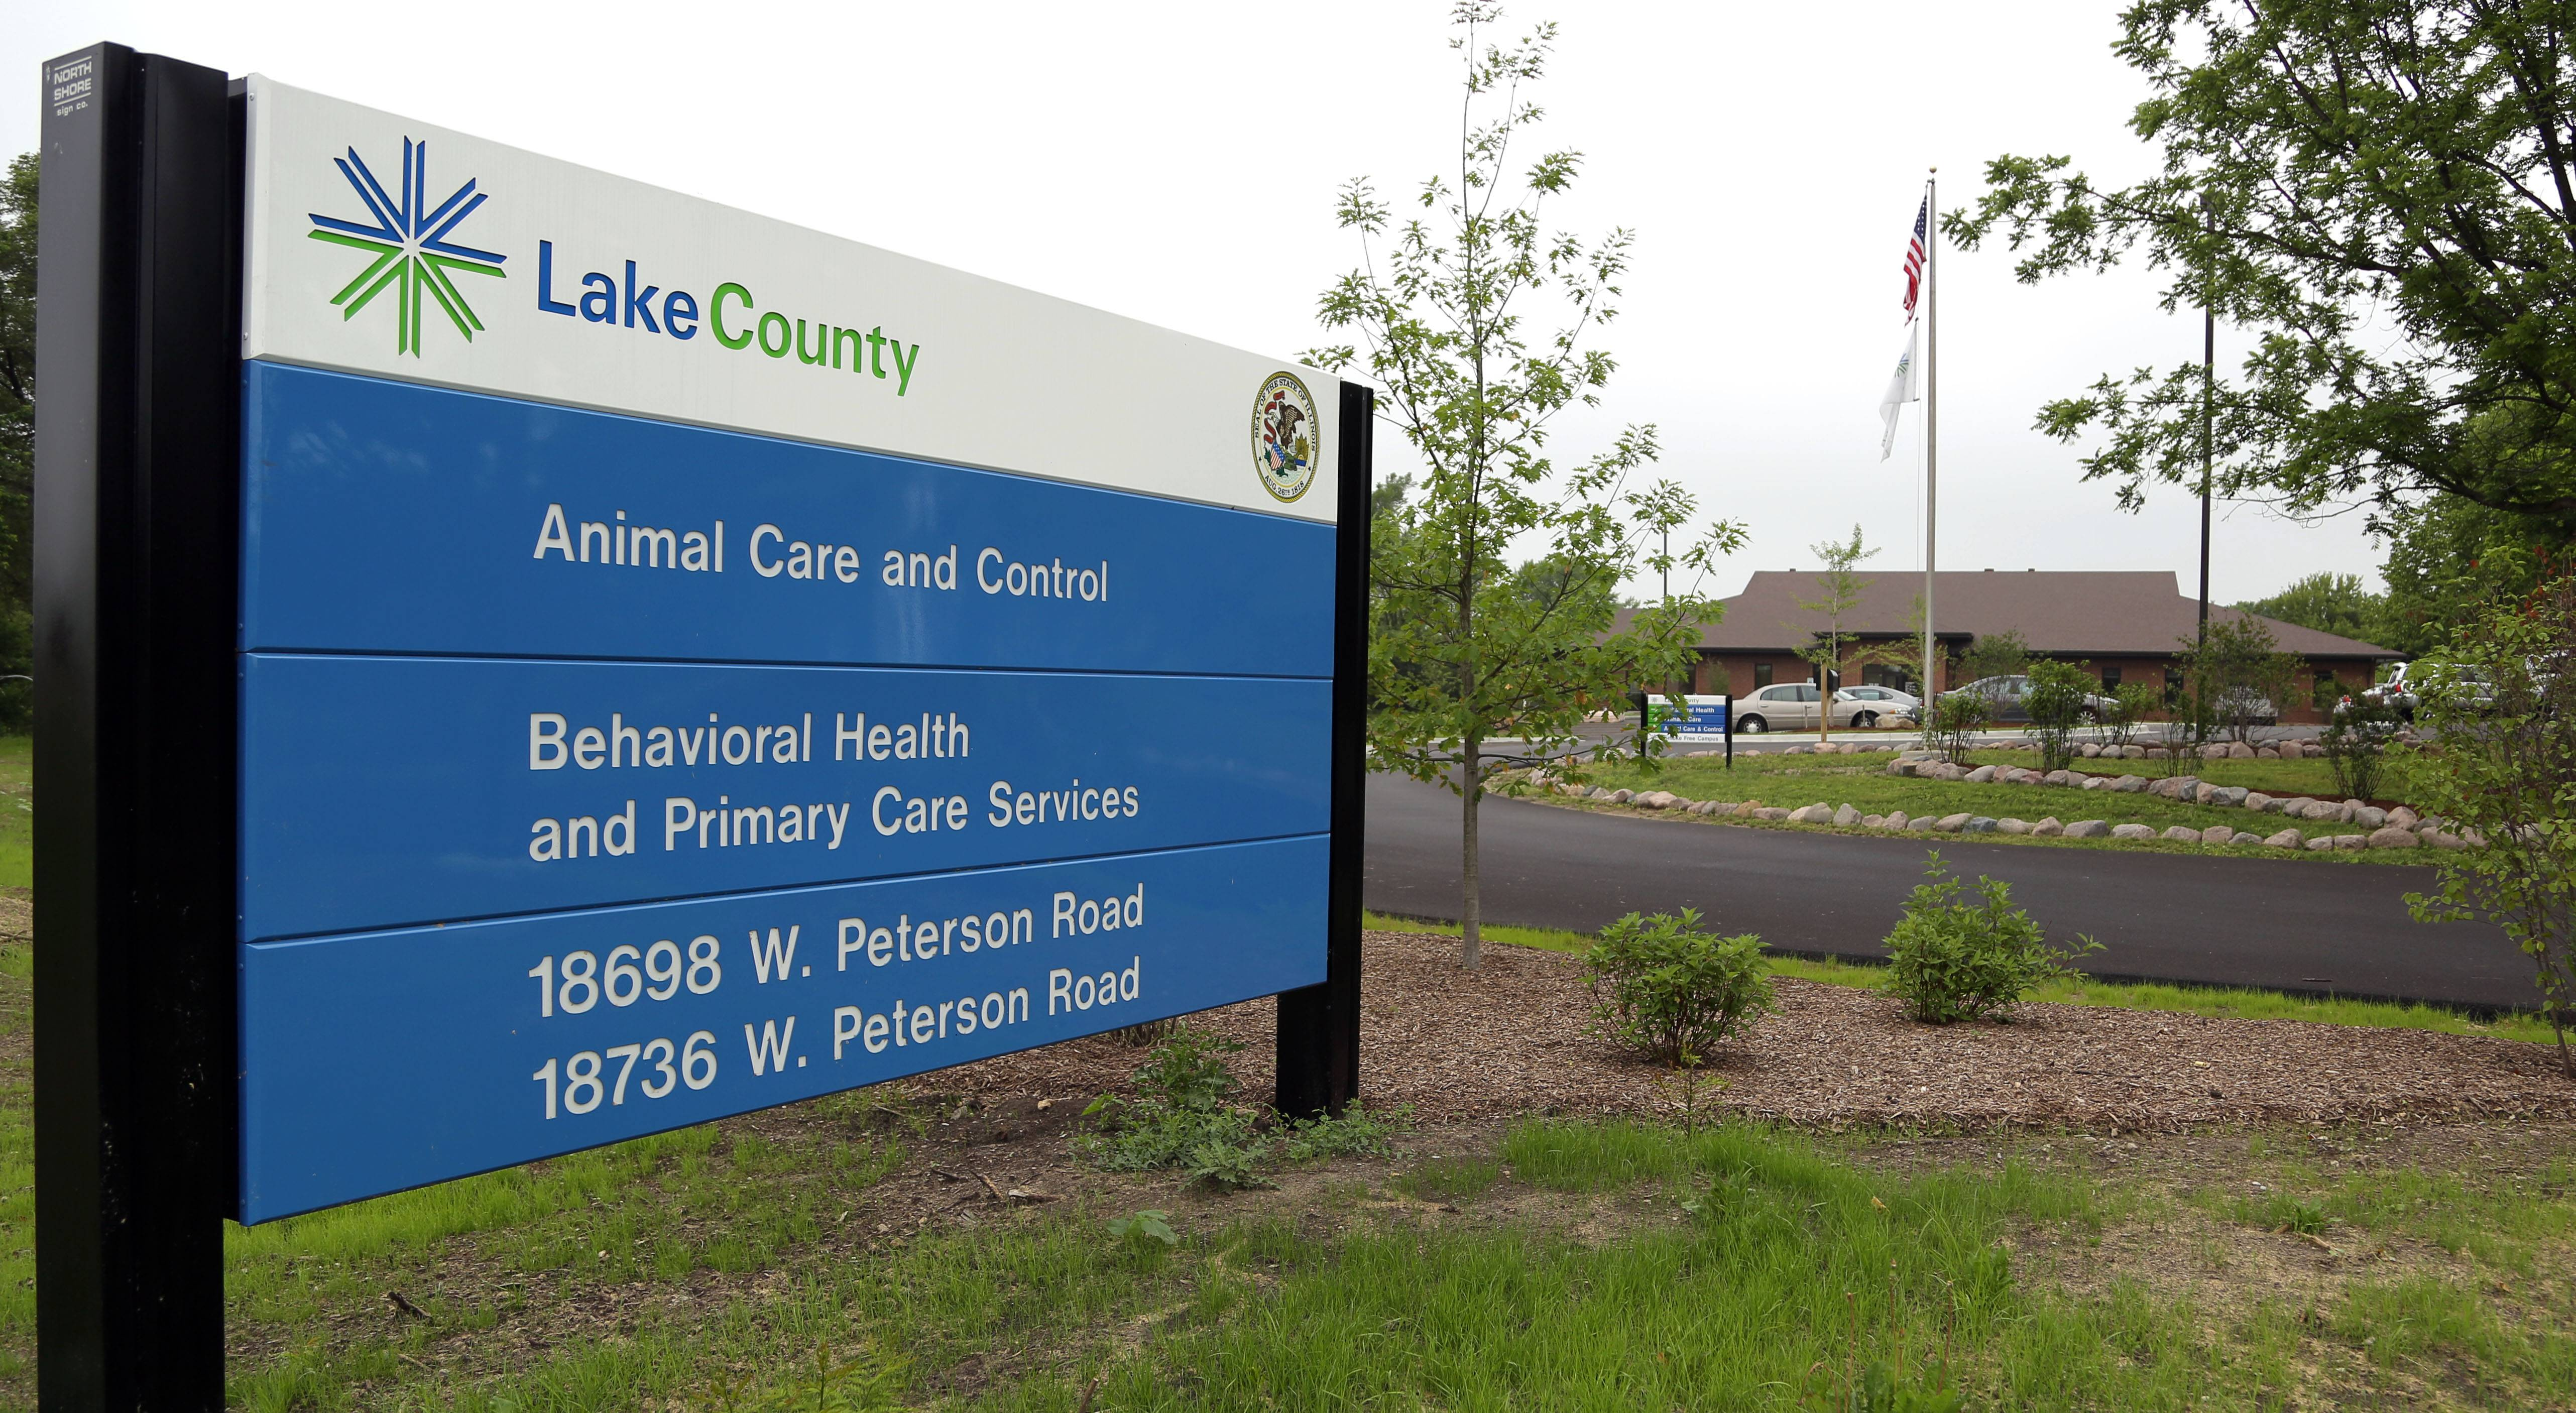 The new Lake County Animal Care and Control facility on Peterson Road in Libertyville is scheduled to open July 25. The facility cost $3.5 million to build.